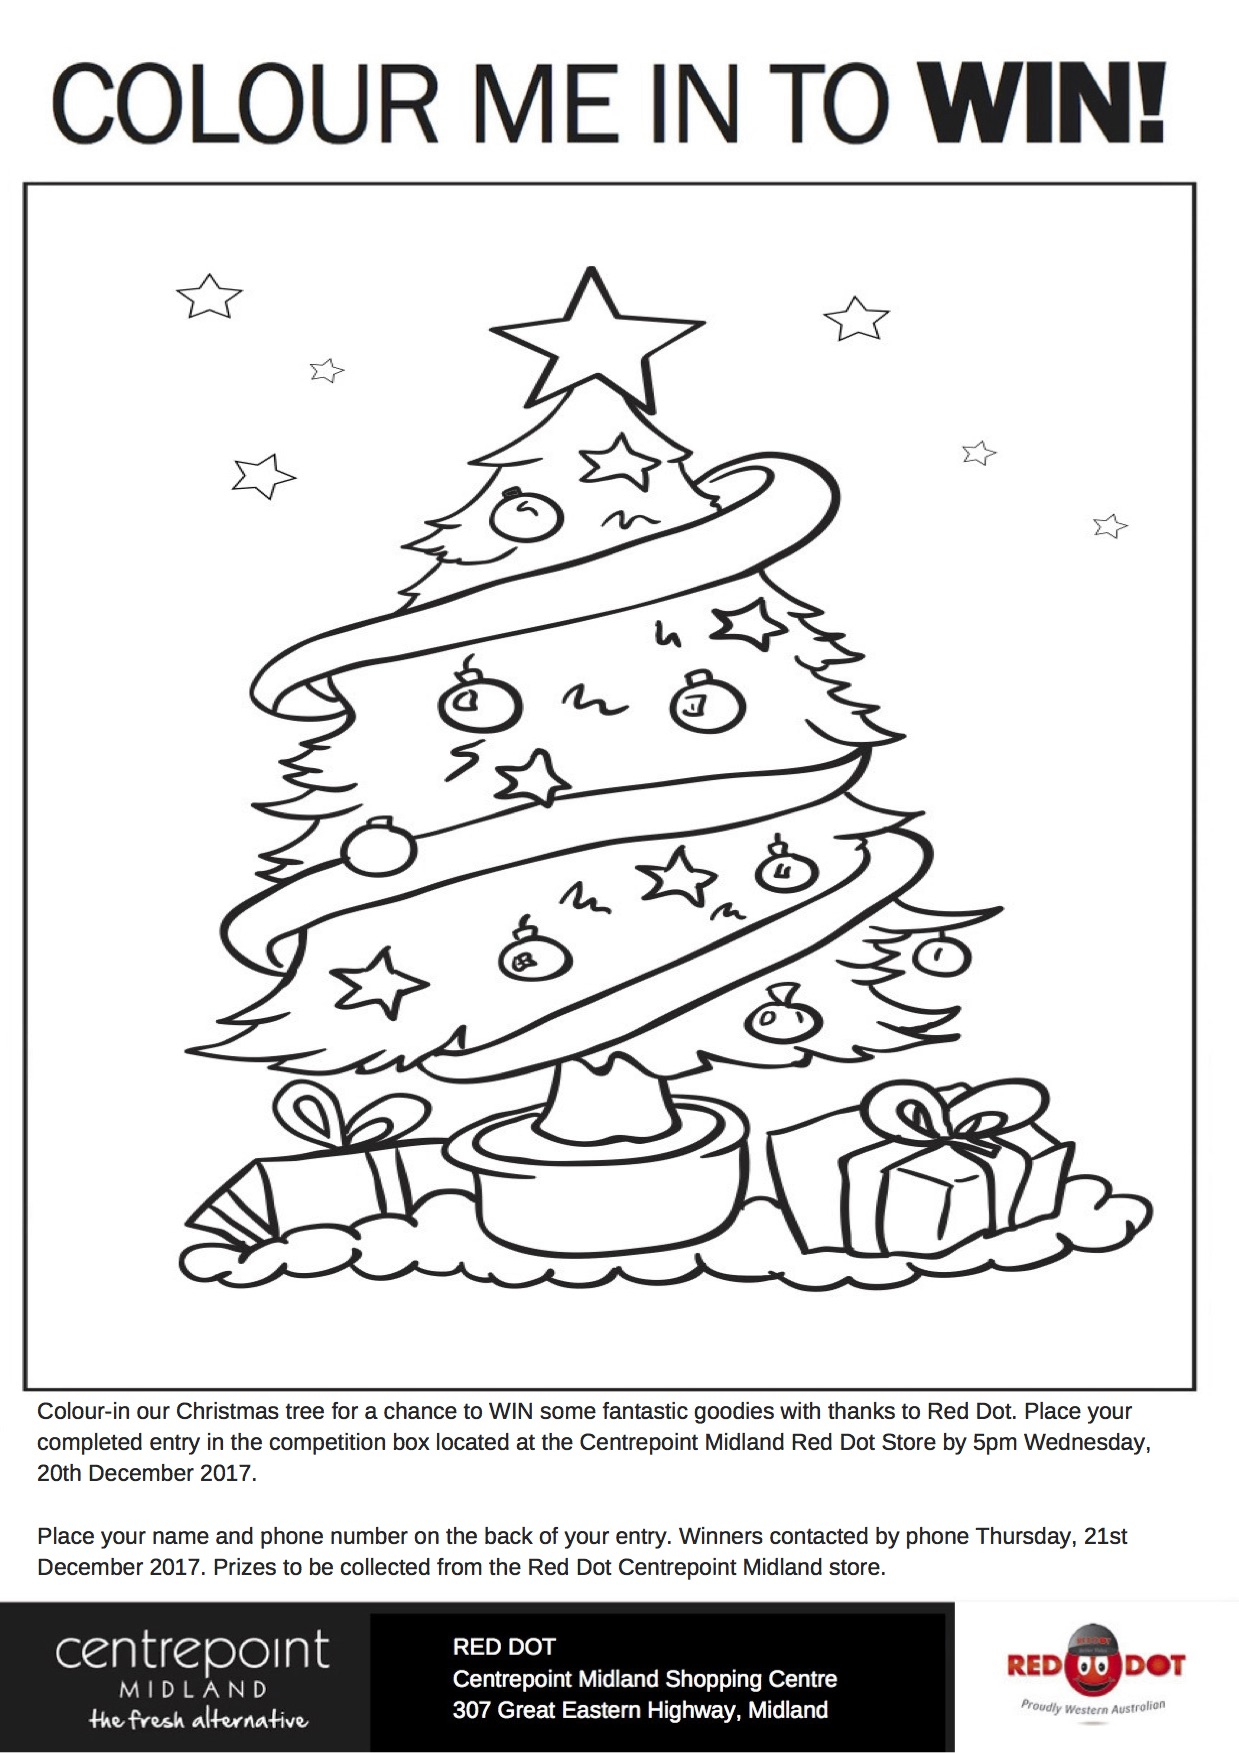 Red Dot Xmas colouring-in competition form2.jpg